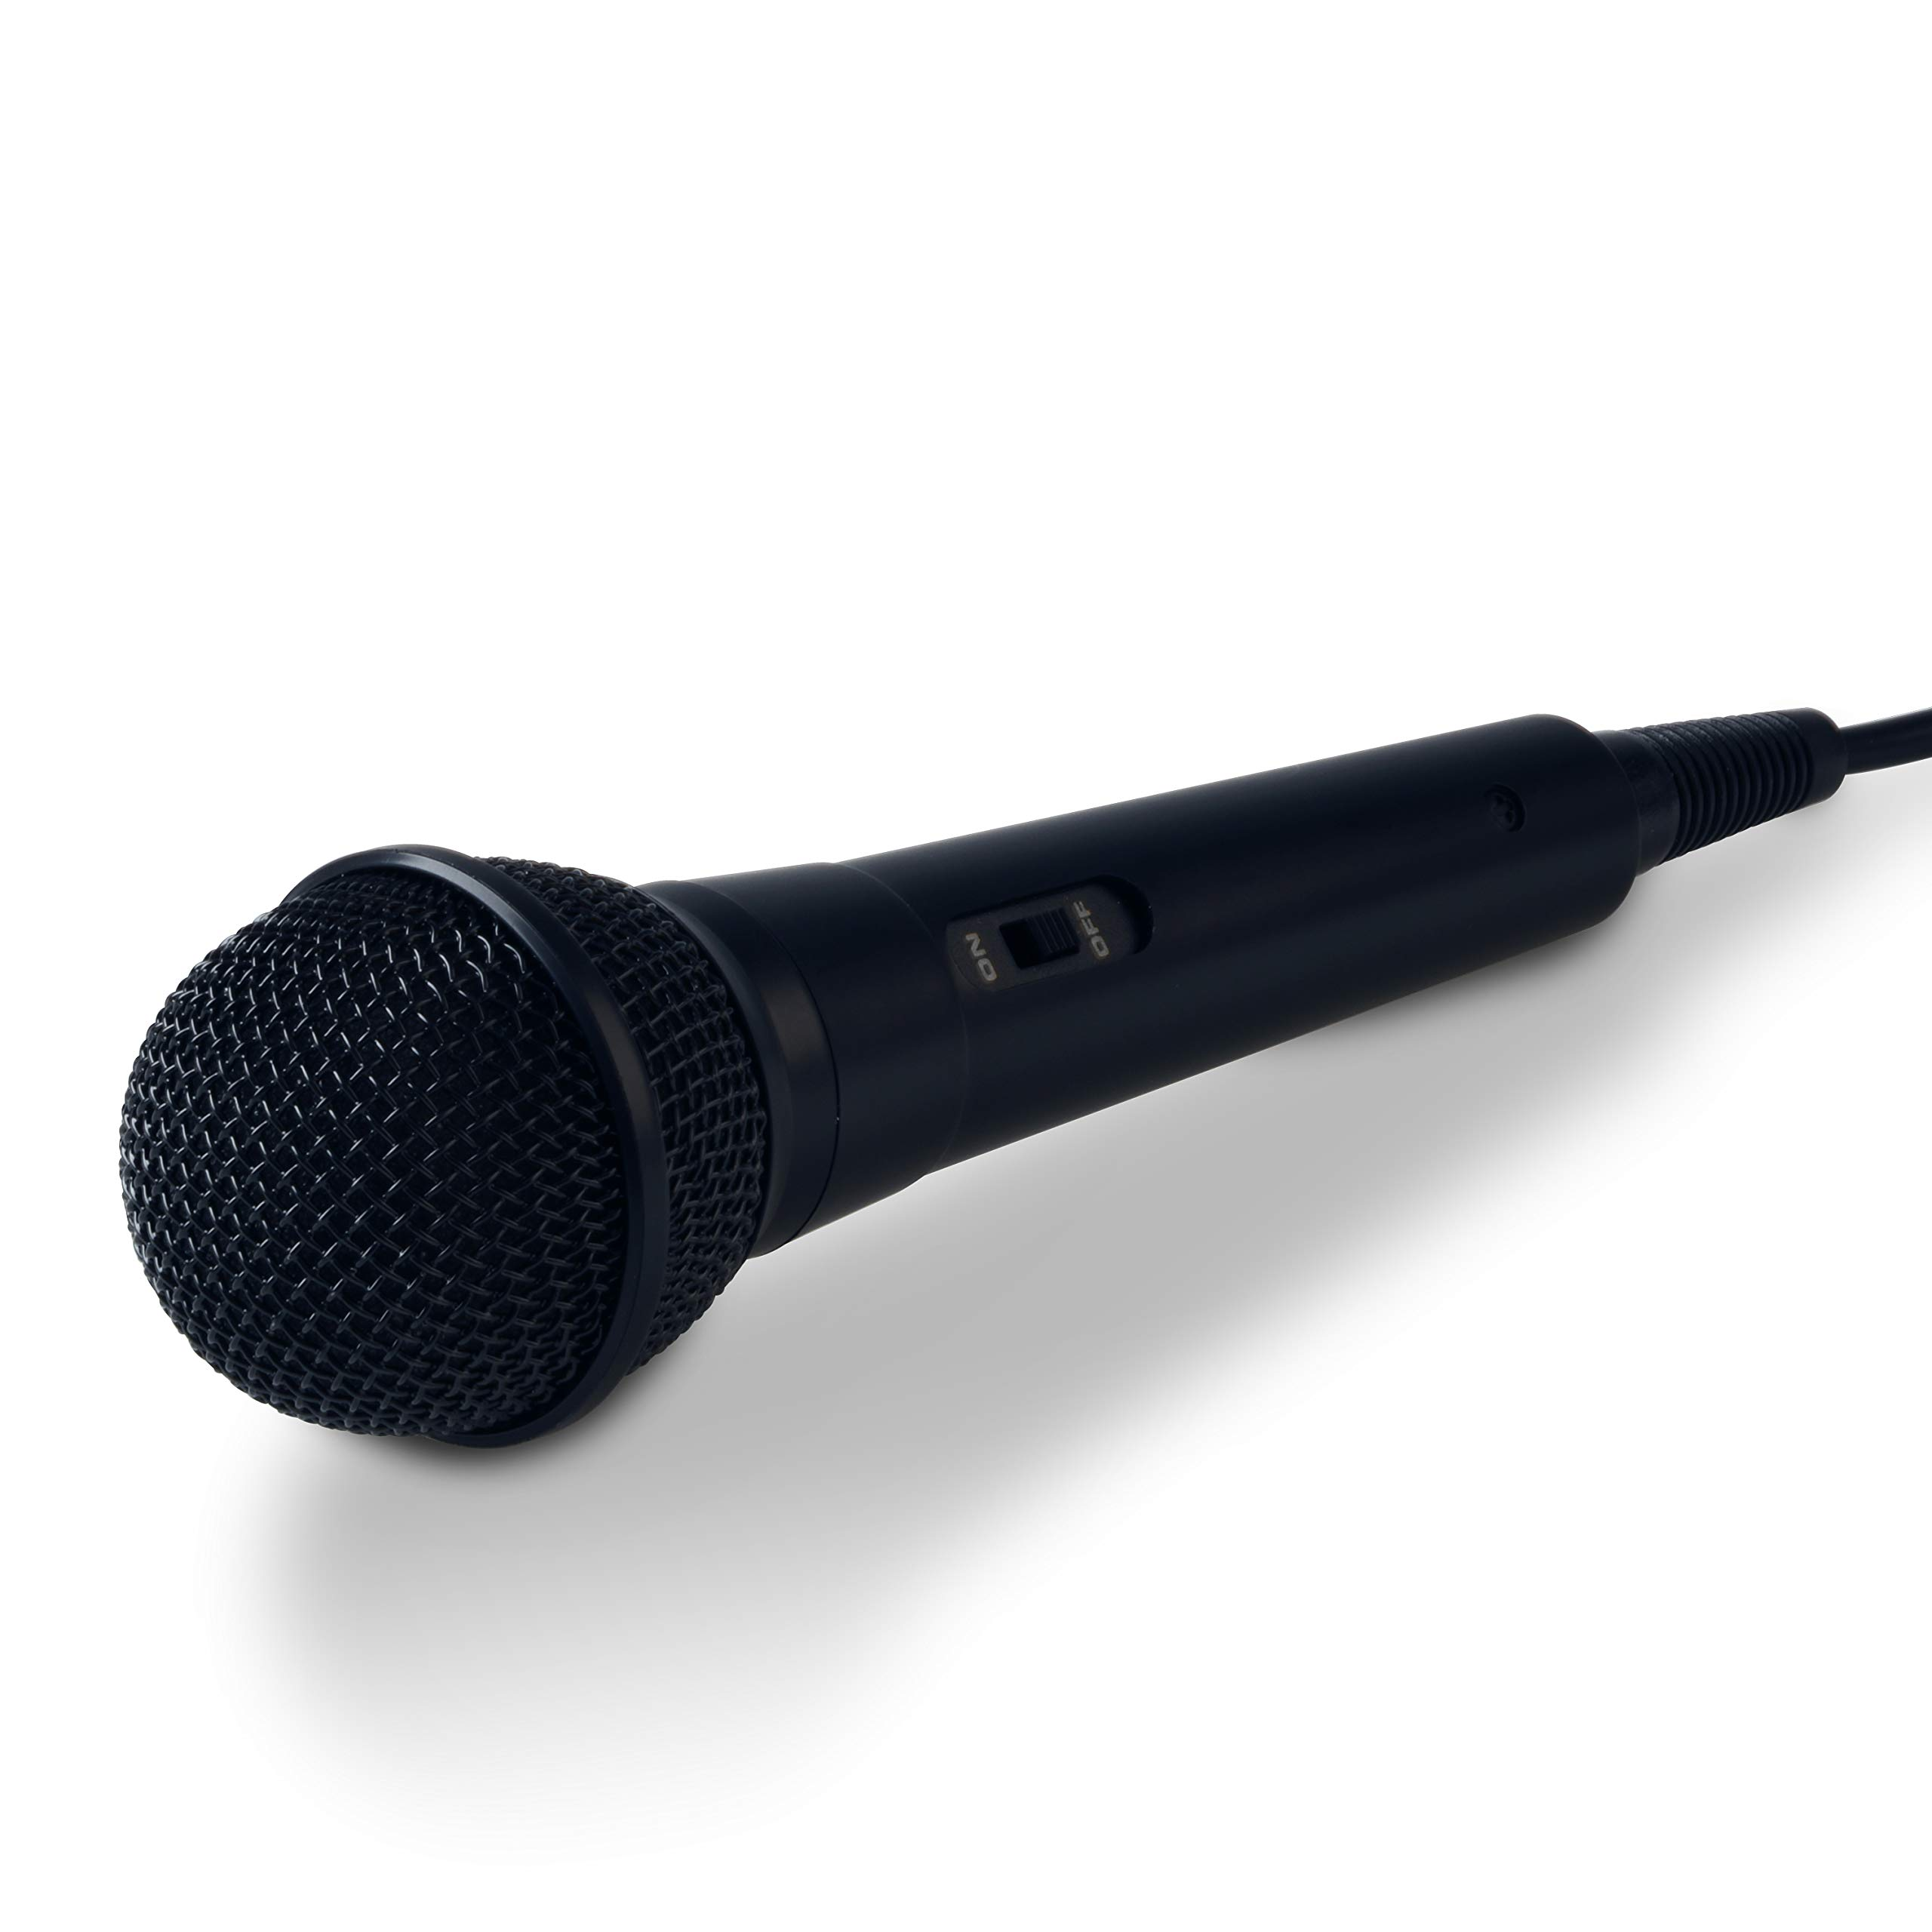 Singsation Accessory Microphone for SPKA30 and SPKA700 Karaoke Machine